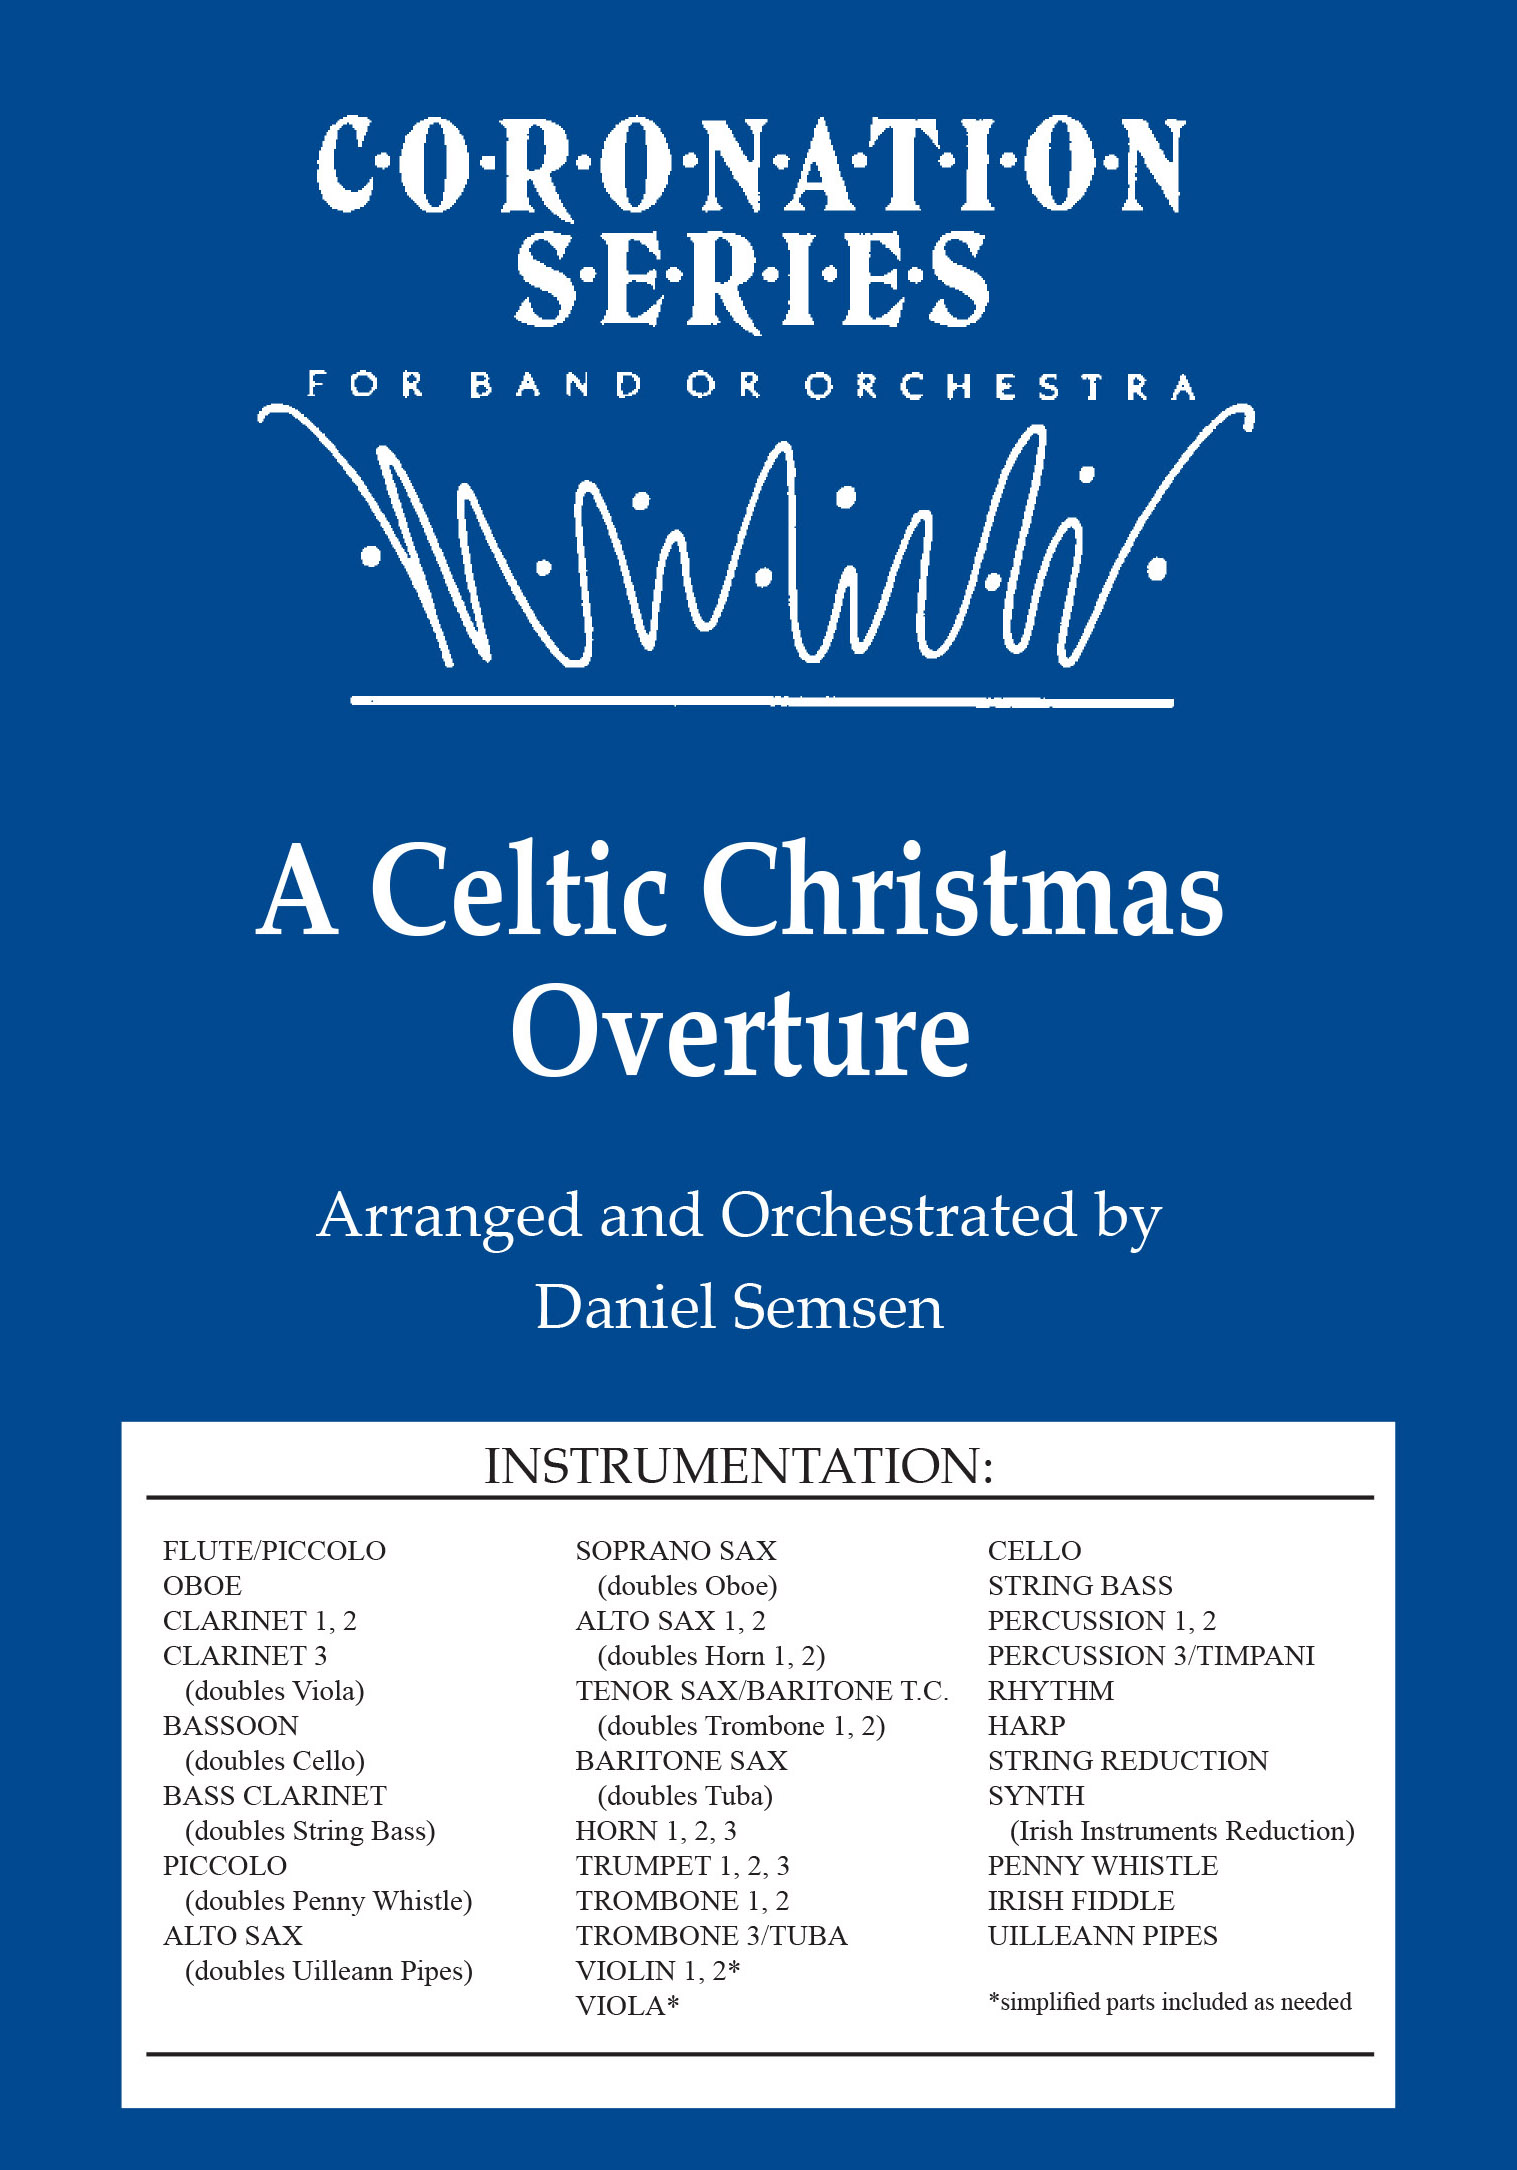 A Celtic Christmas Overture